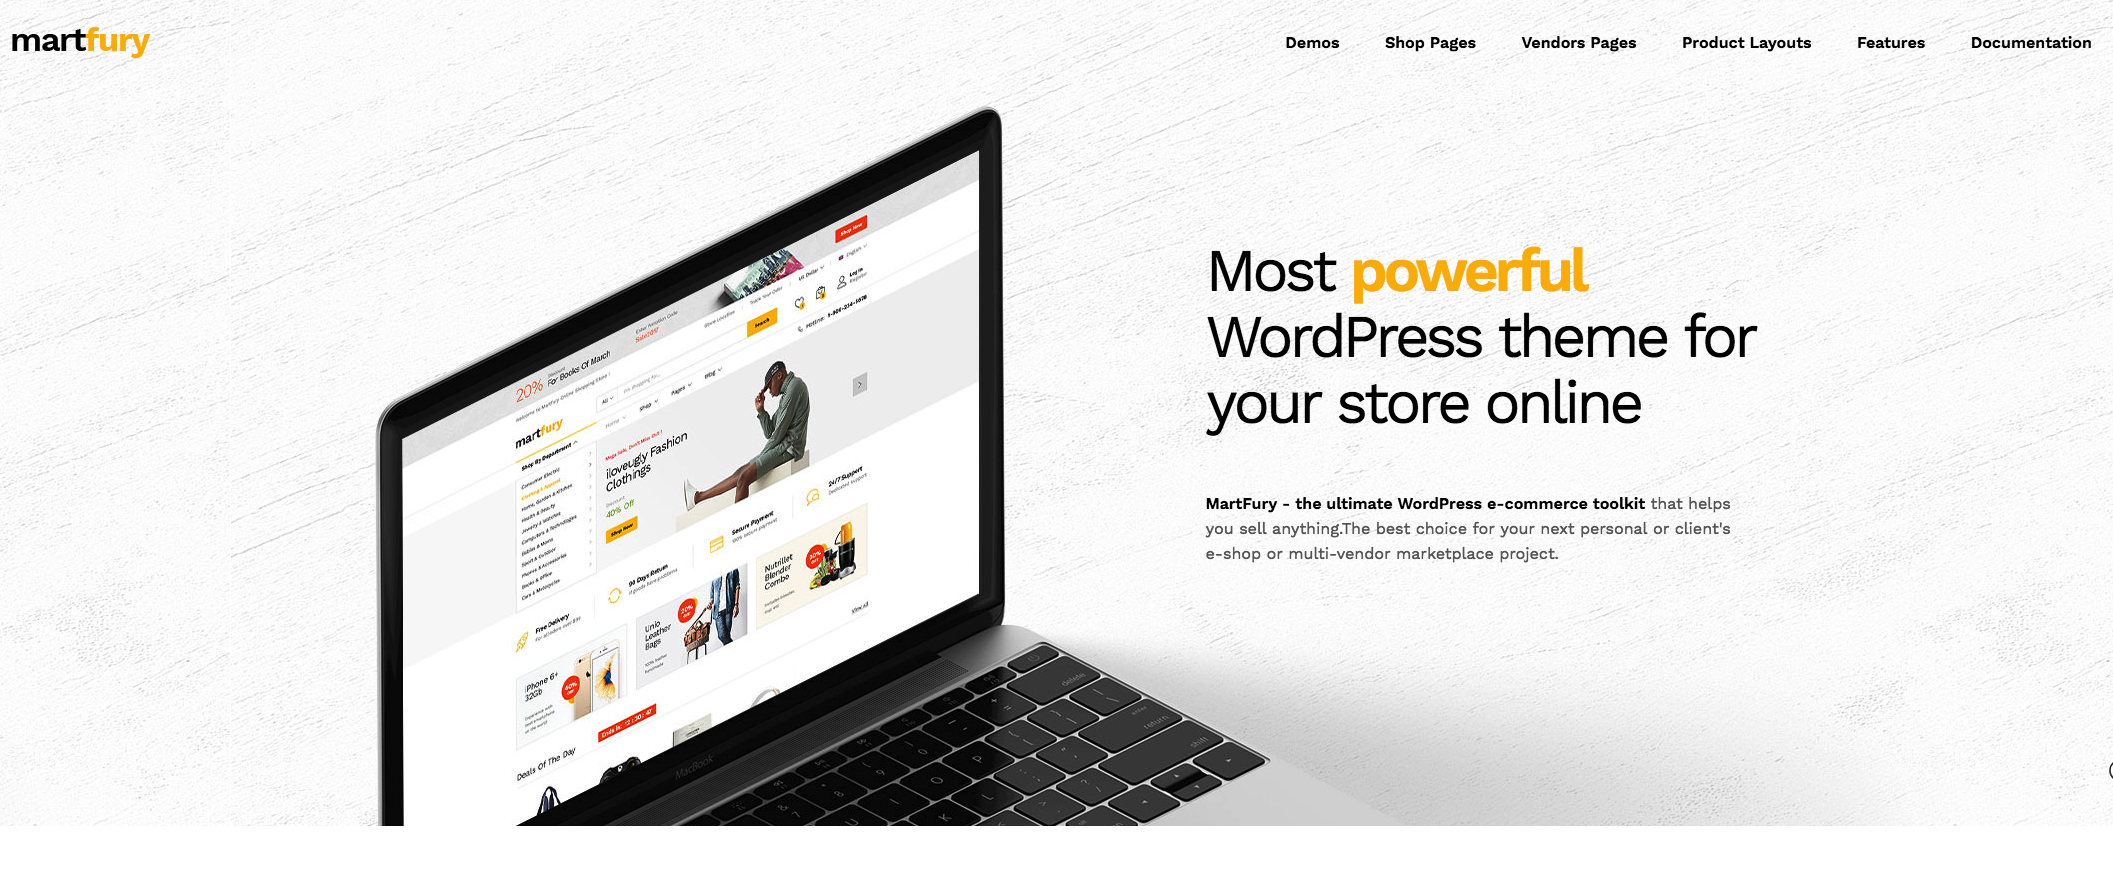 martfury theme wordpress